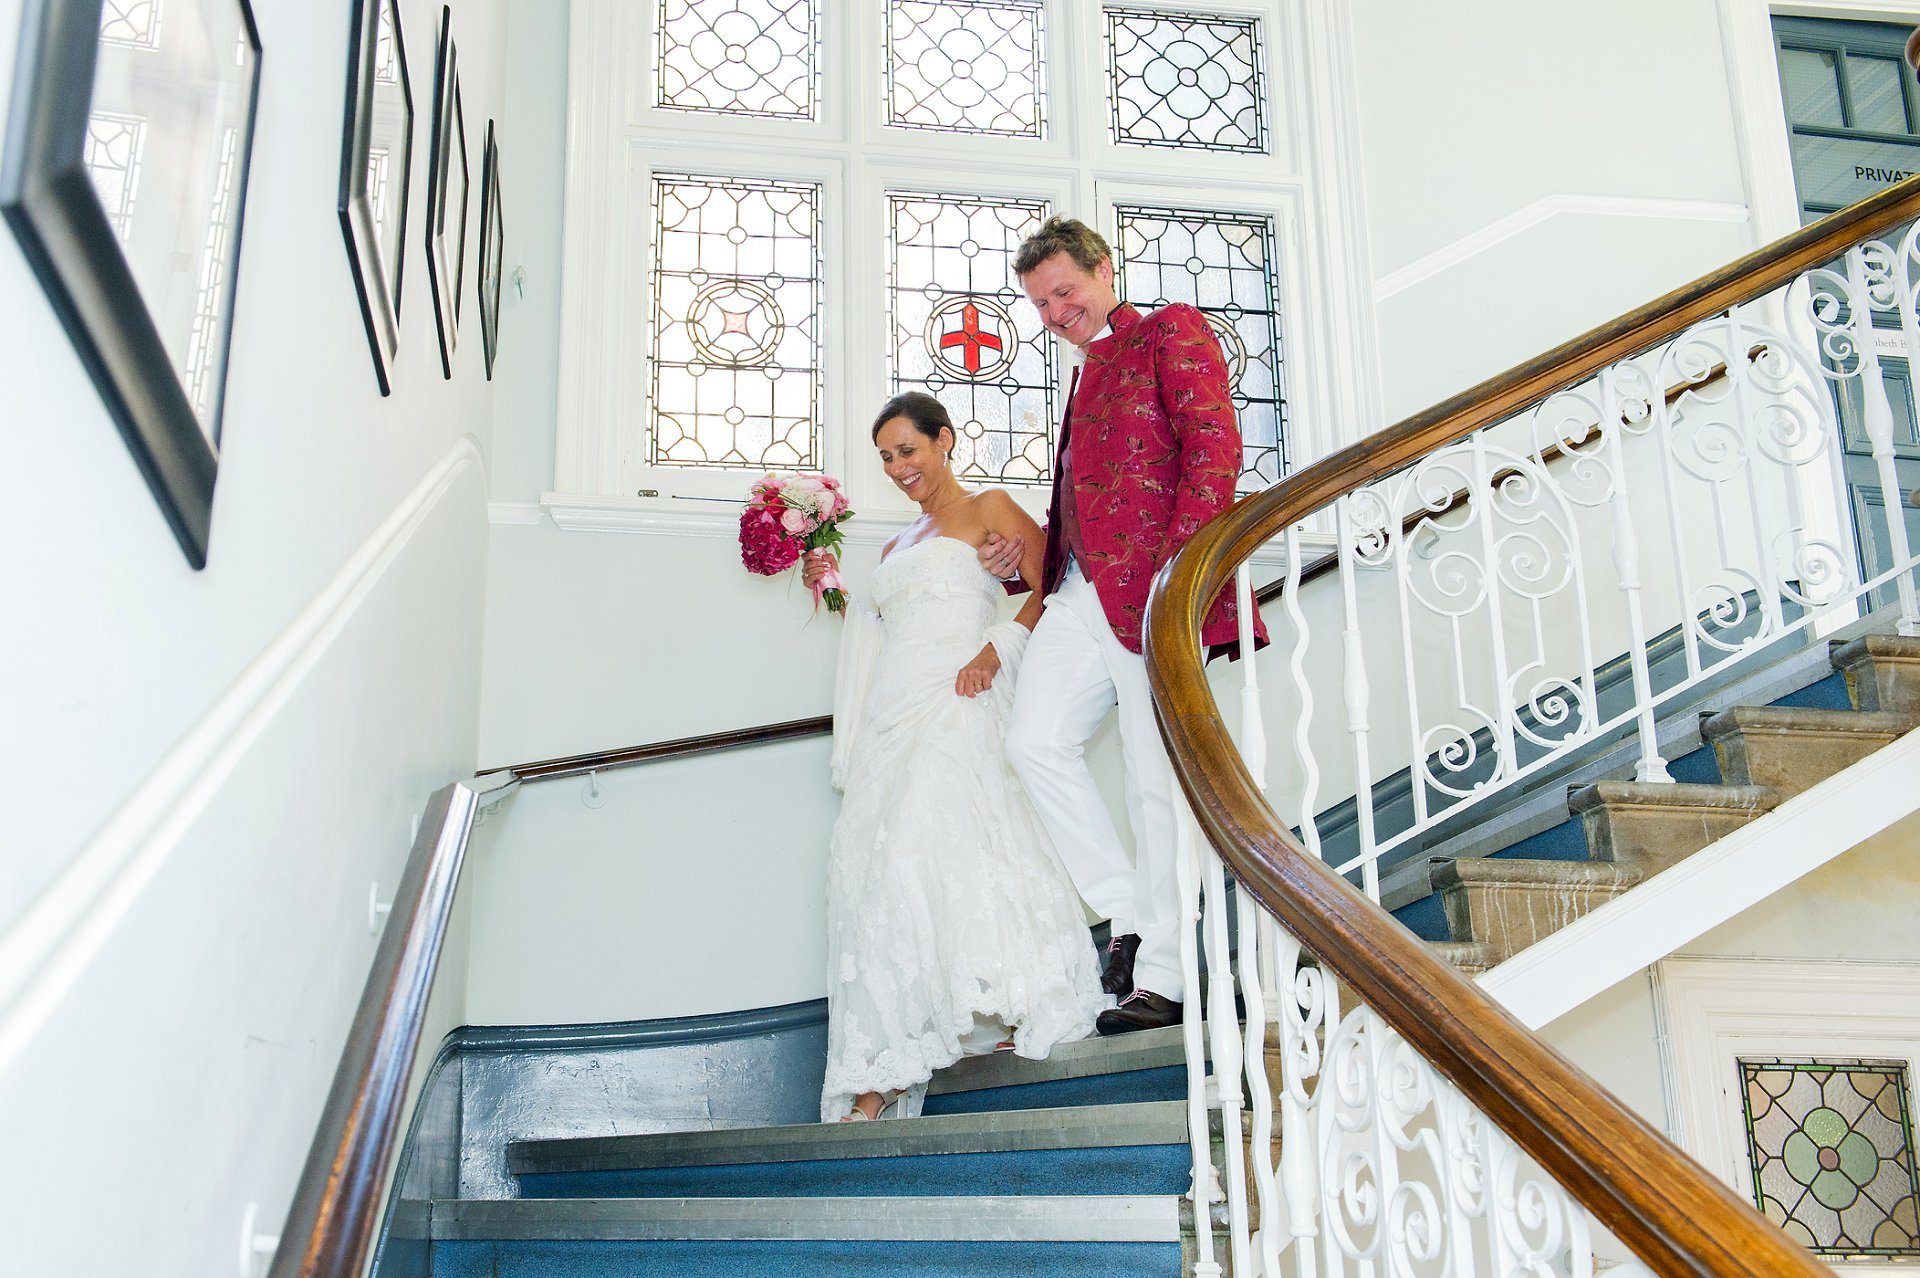 The sweeping staircase at Mayfair Library is very much liked by couples marrying there and here a French couple descend after their civil wedding